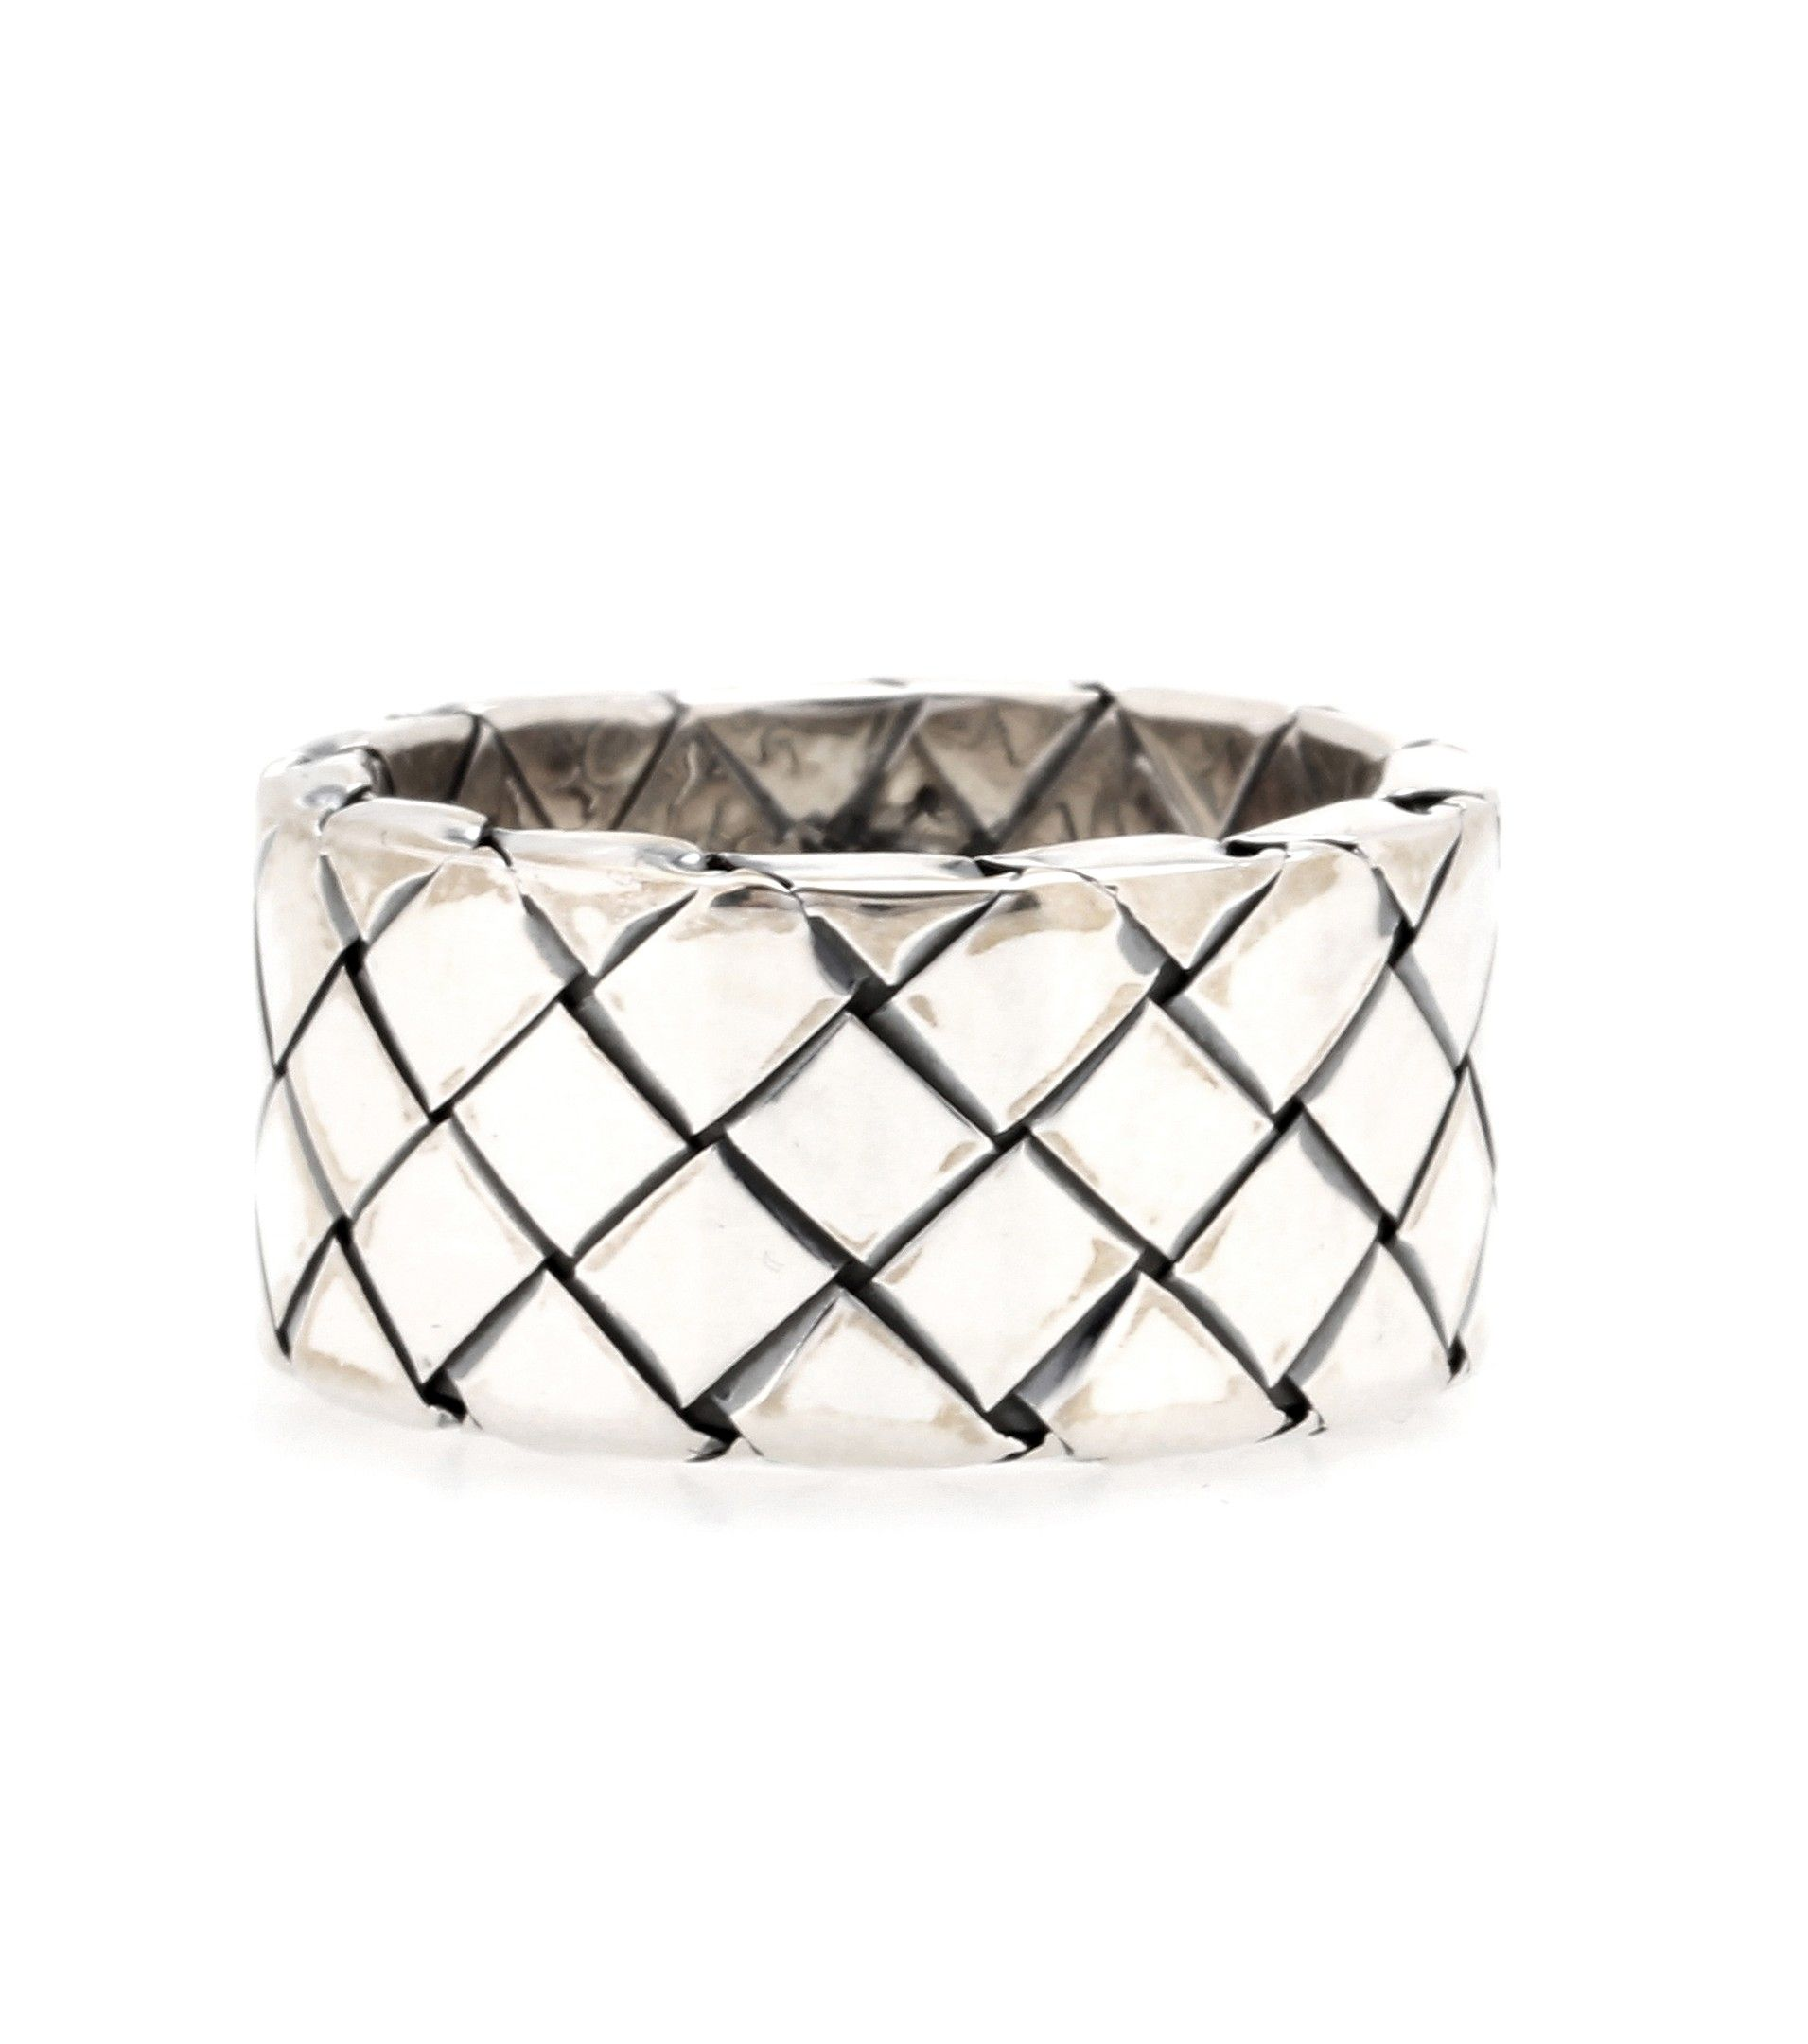 Bottega Veneta gold and silver antique Intrecciato bangle - Metallic rQXcCTIvq